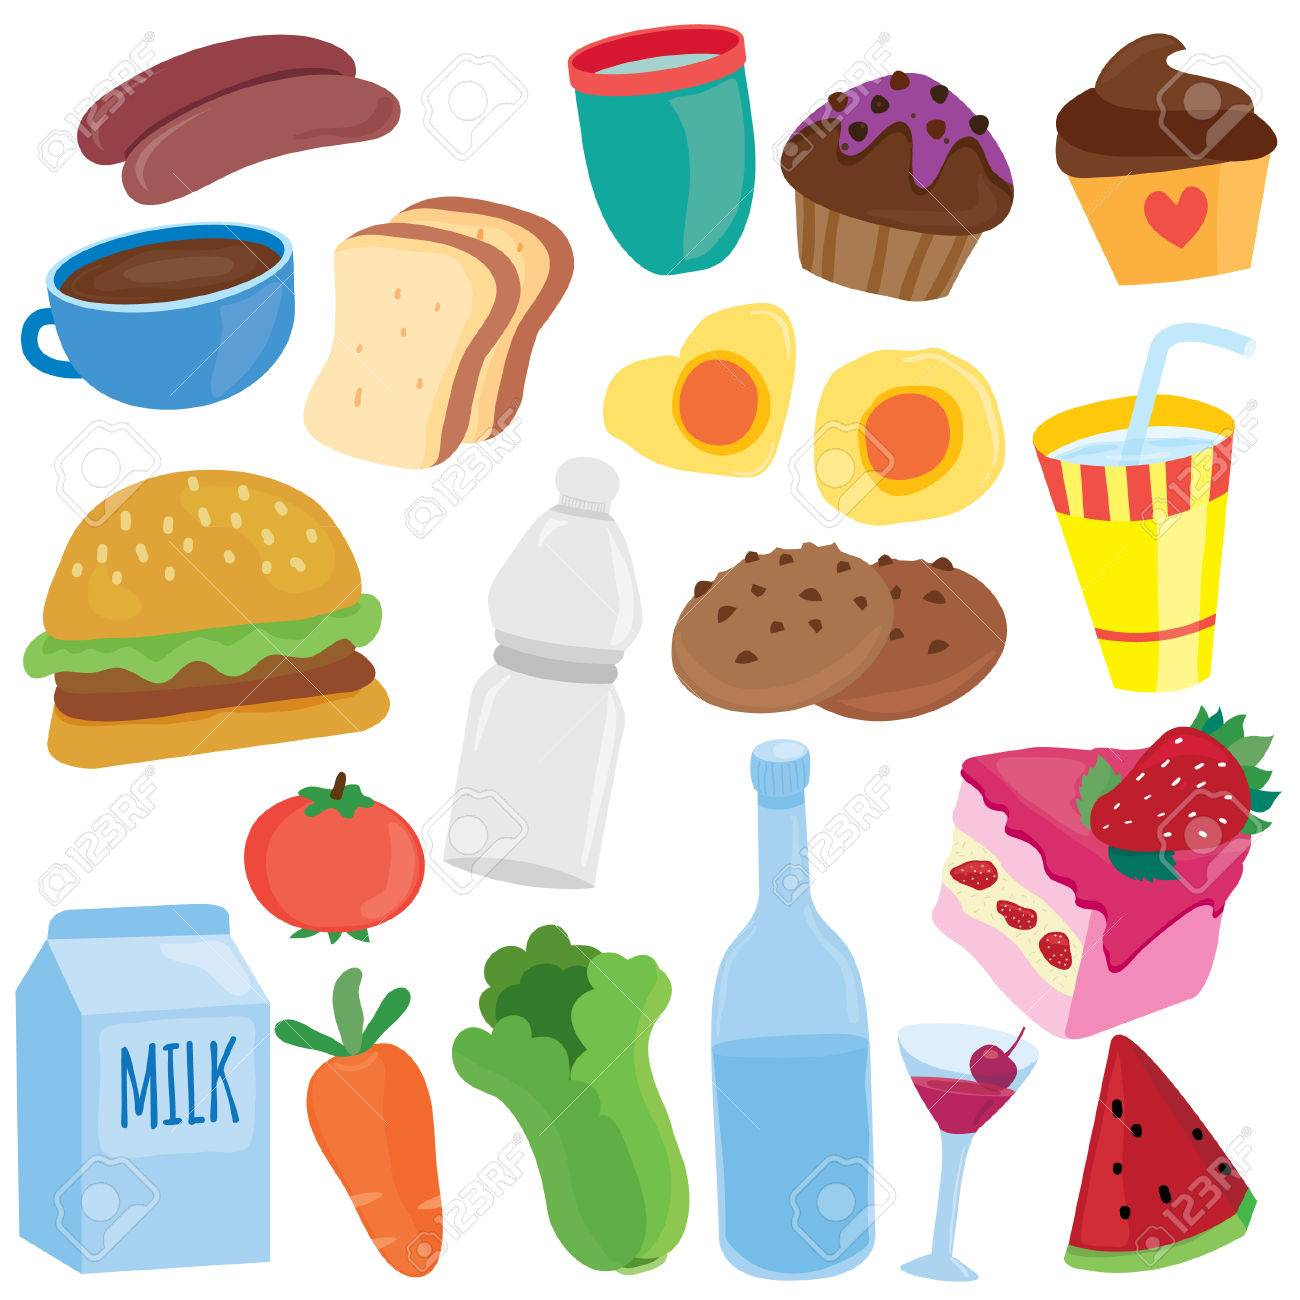 yummy breakfast clip art.